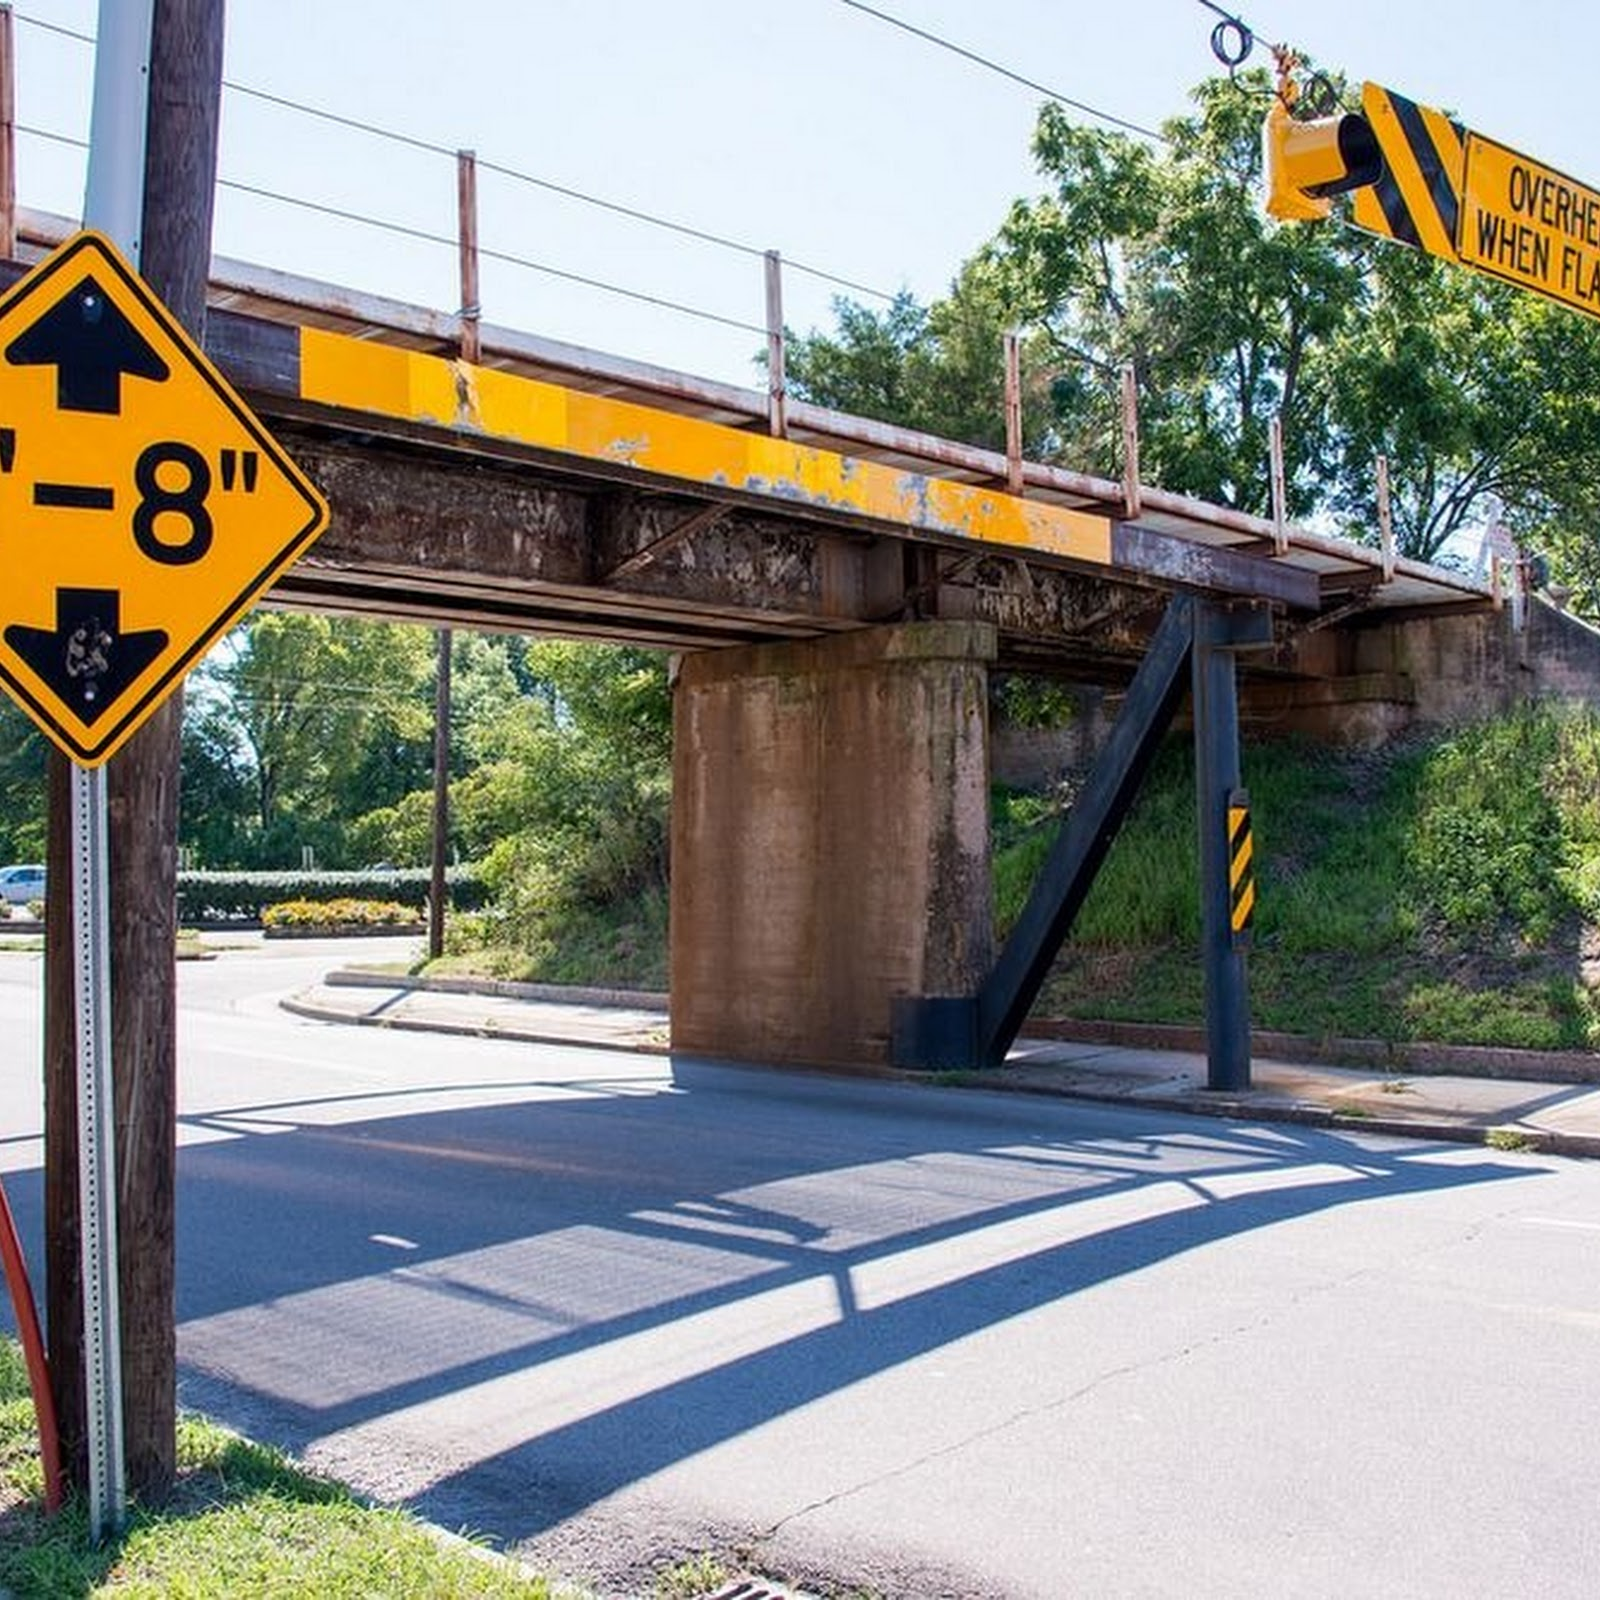 11 Foot 8 Inches: The Infamous 'Can Opener' Bridge